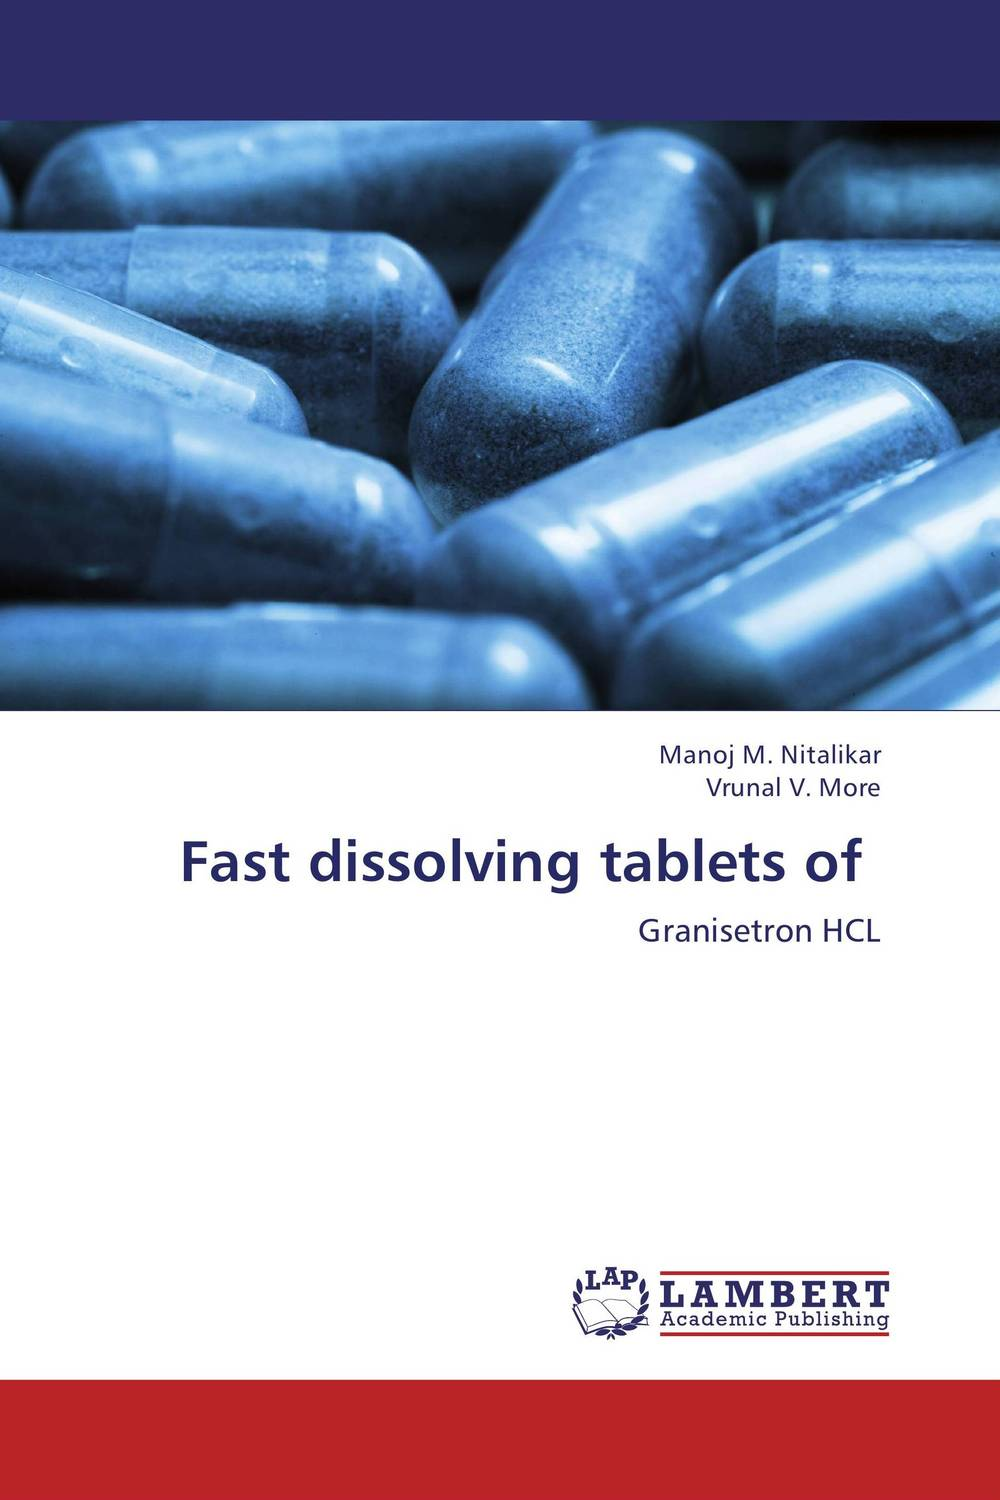 Fast dissolving tablets of seeing things as they are